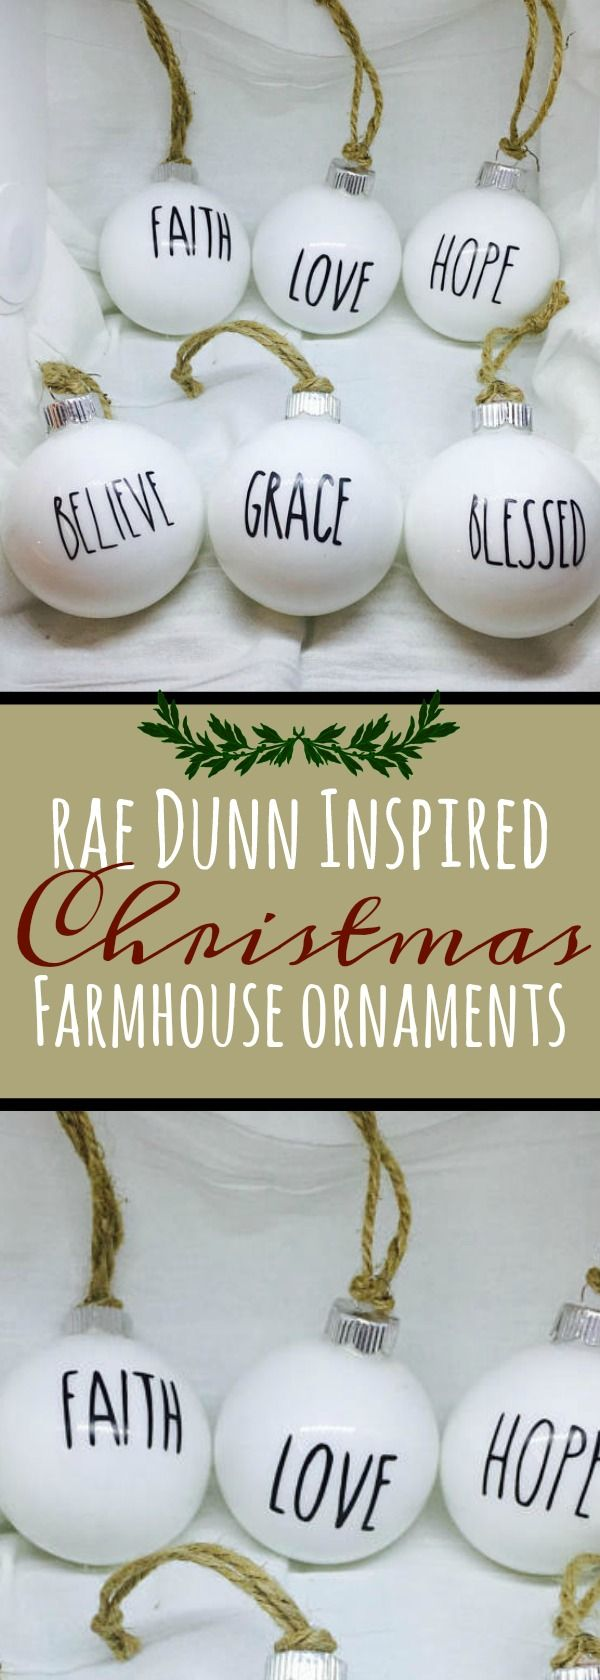 This listing is for 6 farmhouse Decor ornaments with a Rae Dunn inspired look. Ornaments are not just for Christmas! Use them in your pottery displays, anywhere you want to leave a message. These Rae Dunn inspired glass ornaments have been designed to coordinate with Rae Dunn collectables. Farmhouse Christmas ornaments, farmhouse white Christmas ornaments, farmhouse Christmas ornament Decor #Christmas #Sponsored